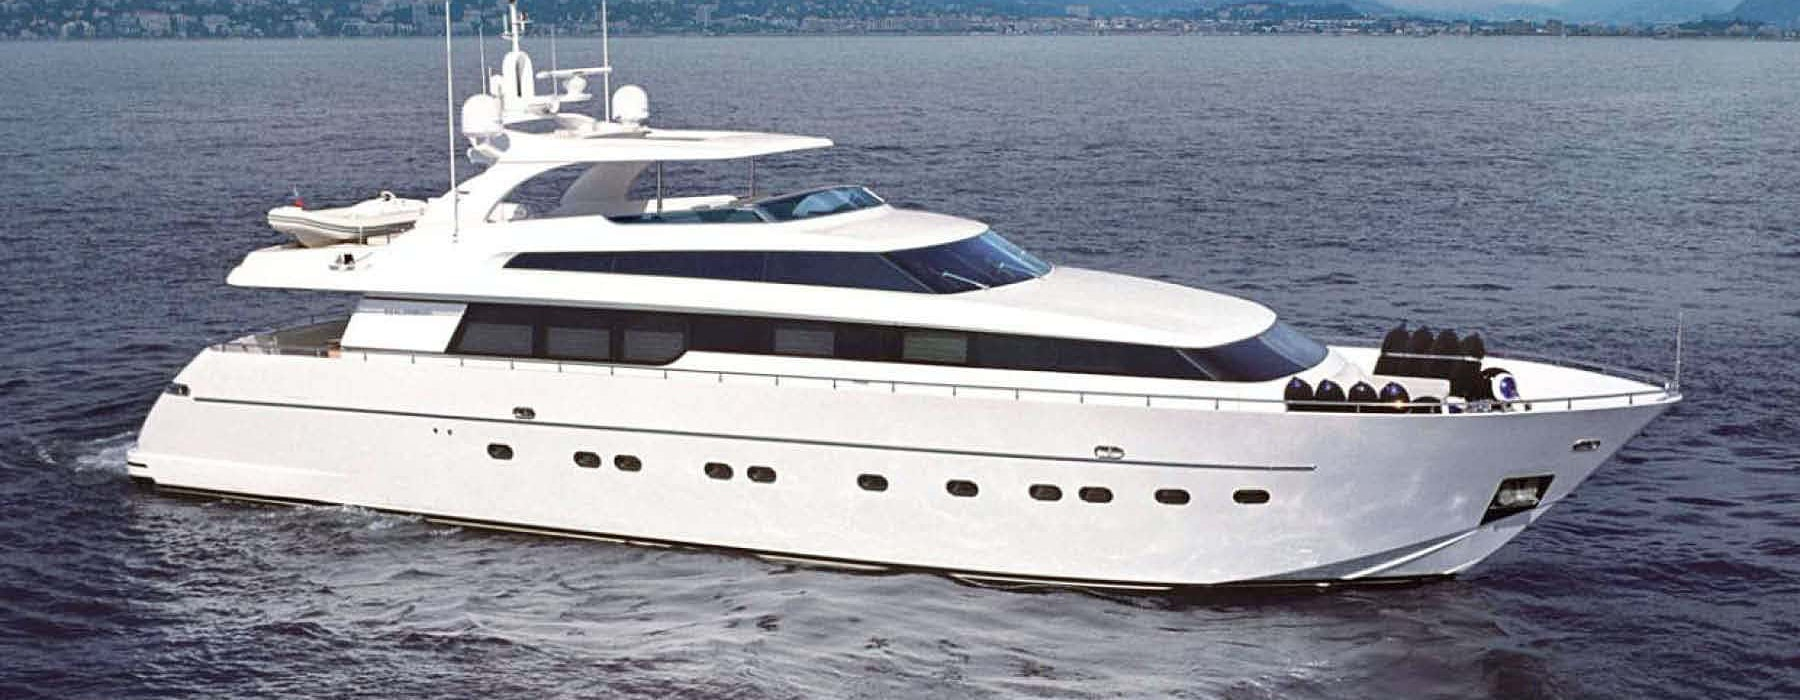 Sanlorenzo KAVALIER Luxury Yacht For Sale